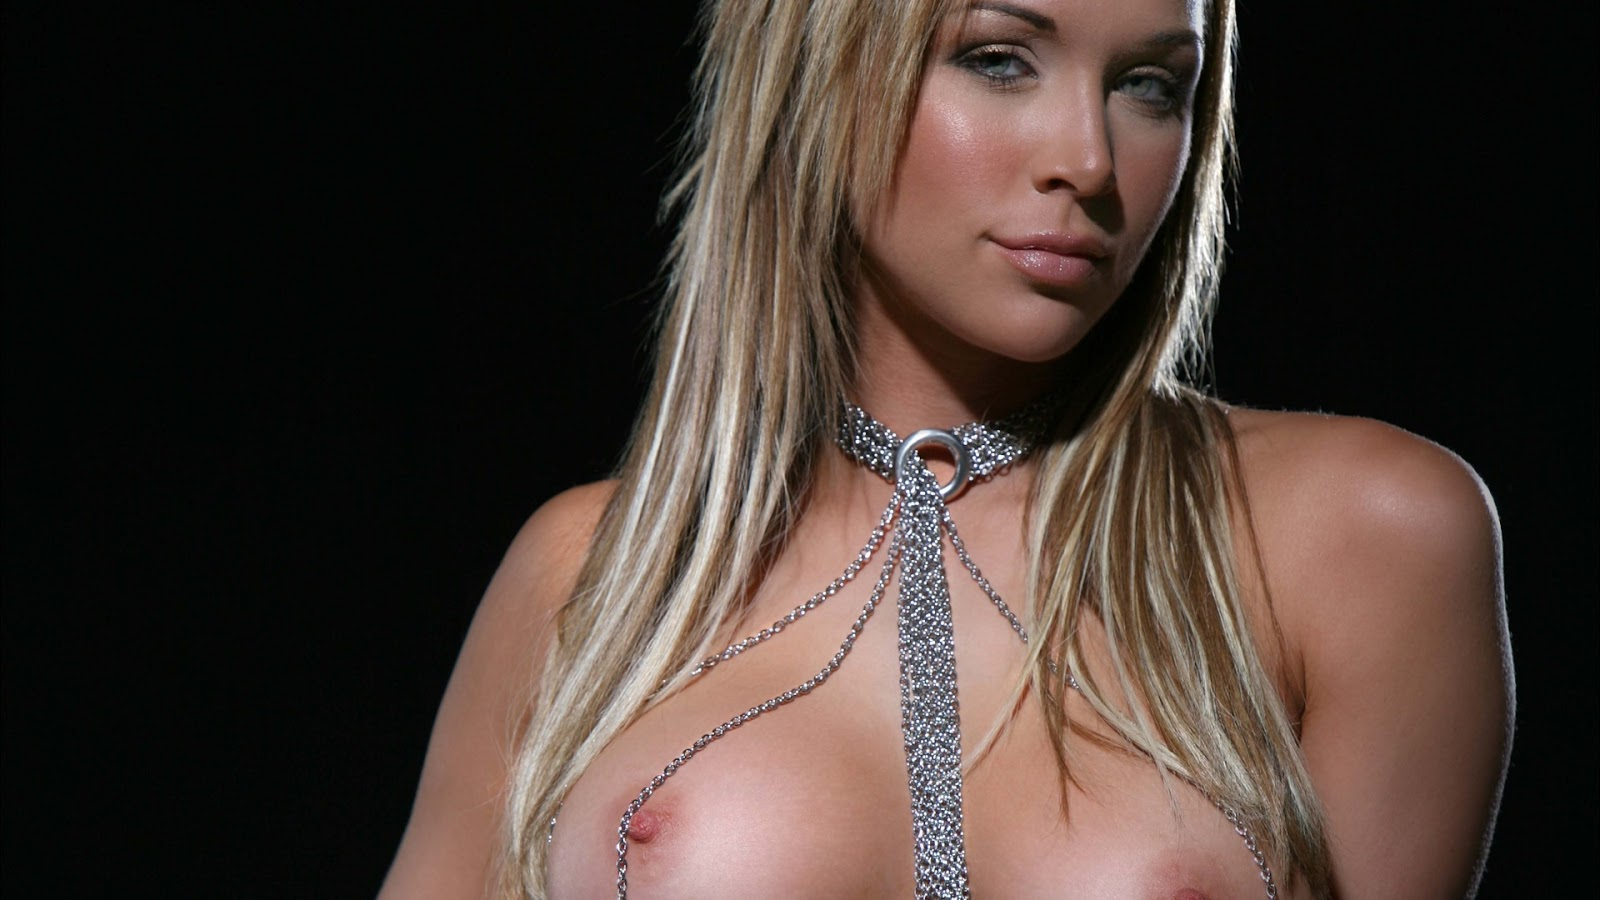 most famous female pornstars naked